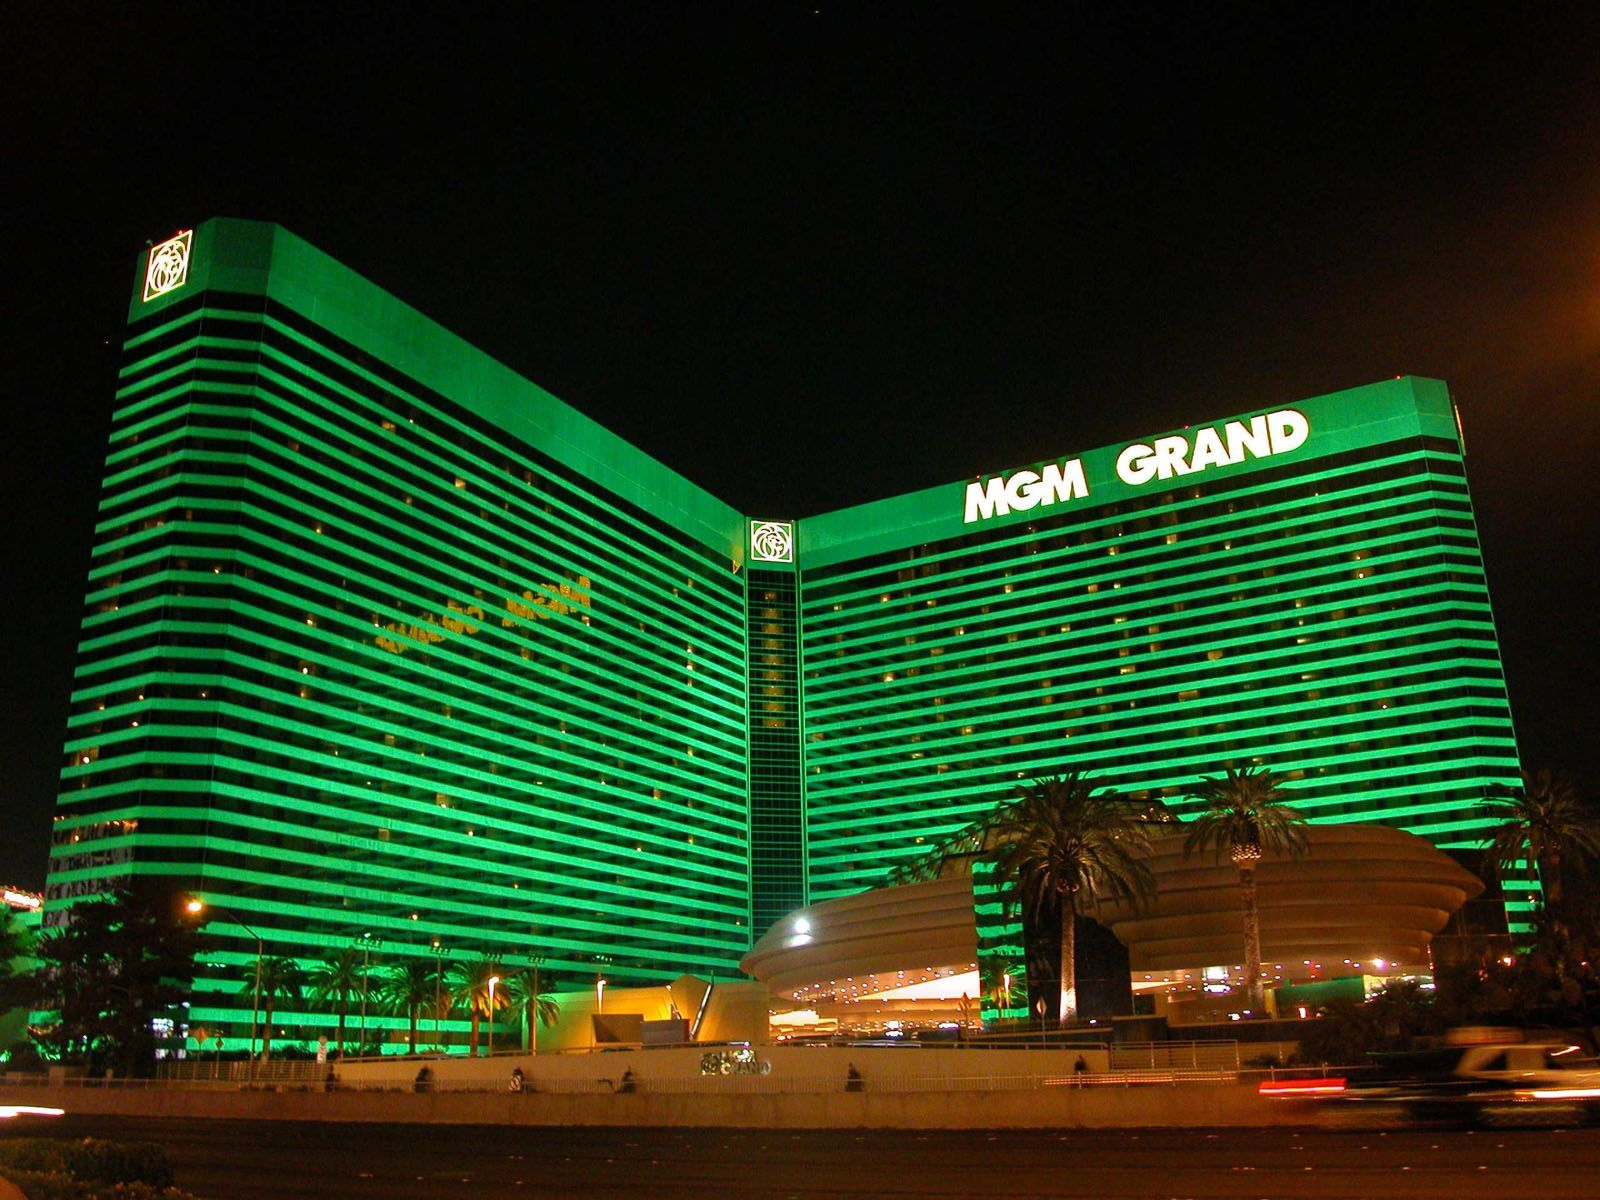 The Mgm Grand Las Vegas Is A Hotel Located On Strip In Paradise Nevada Second Largest